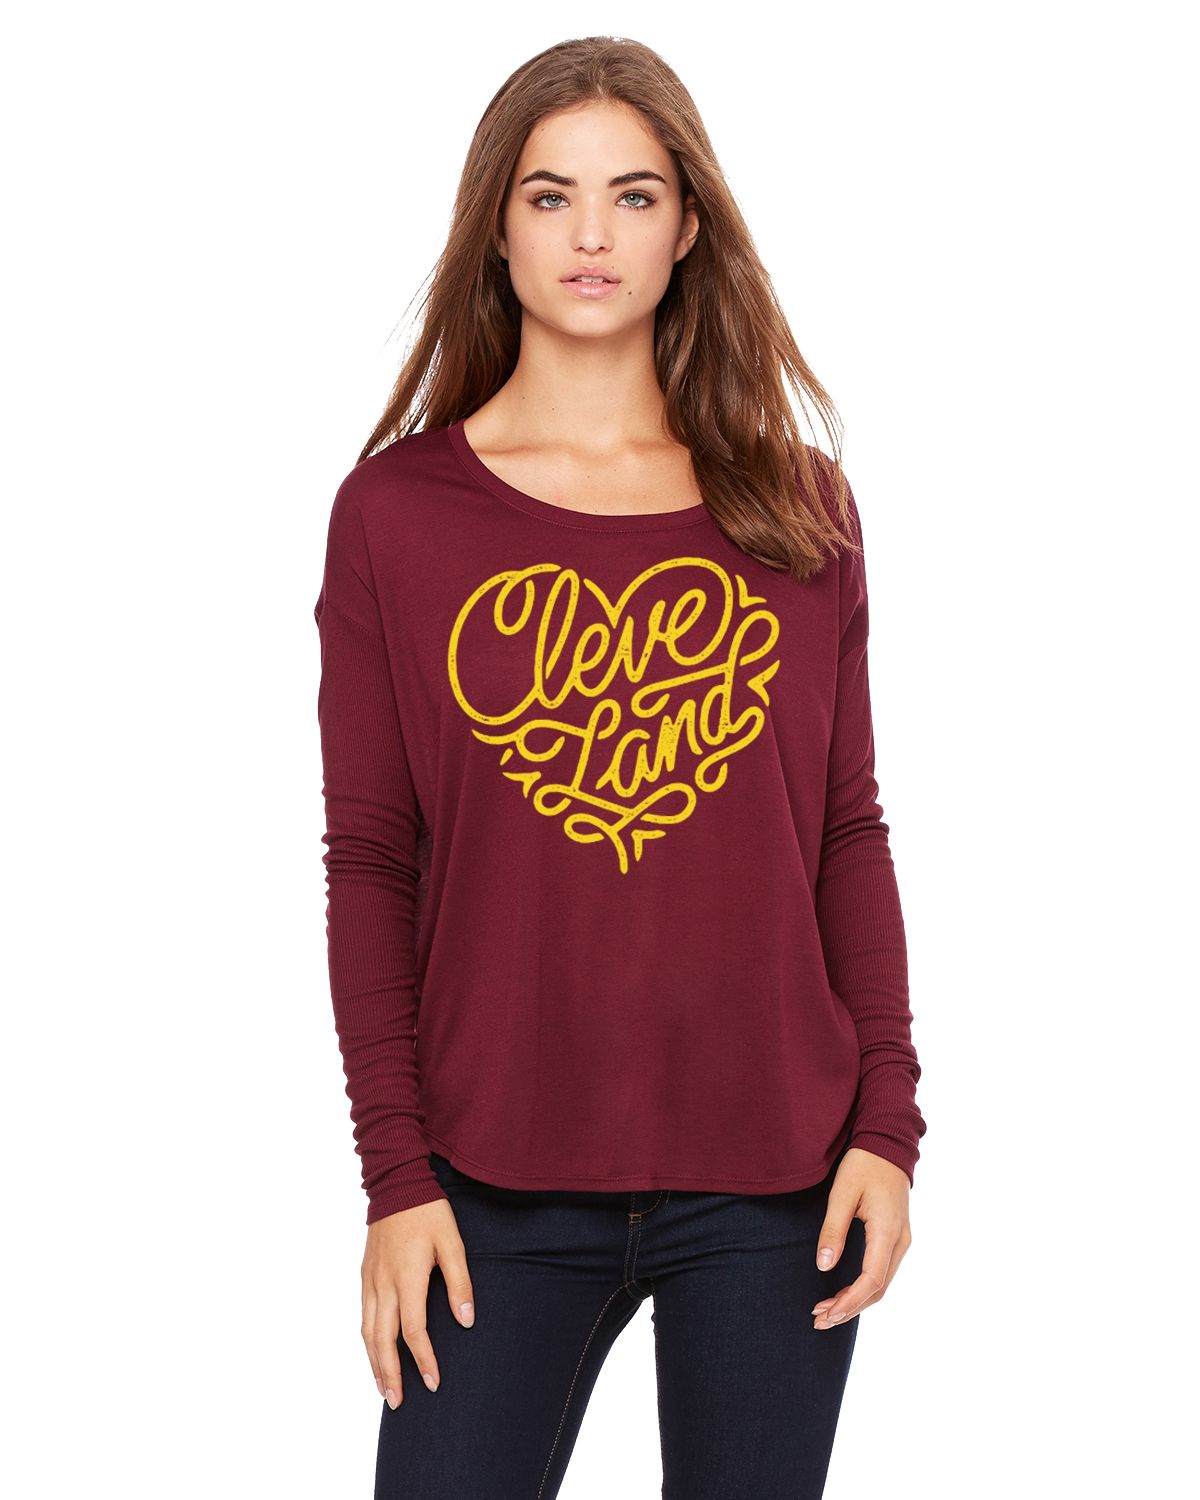 Image of Cleveland Heart ladies maroon long sleeve